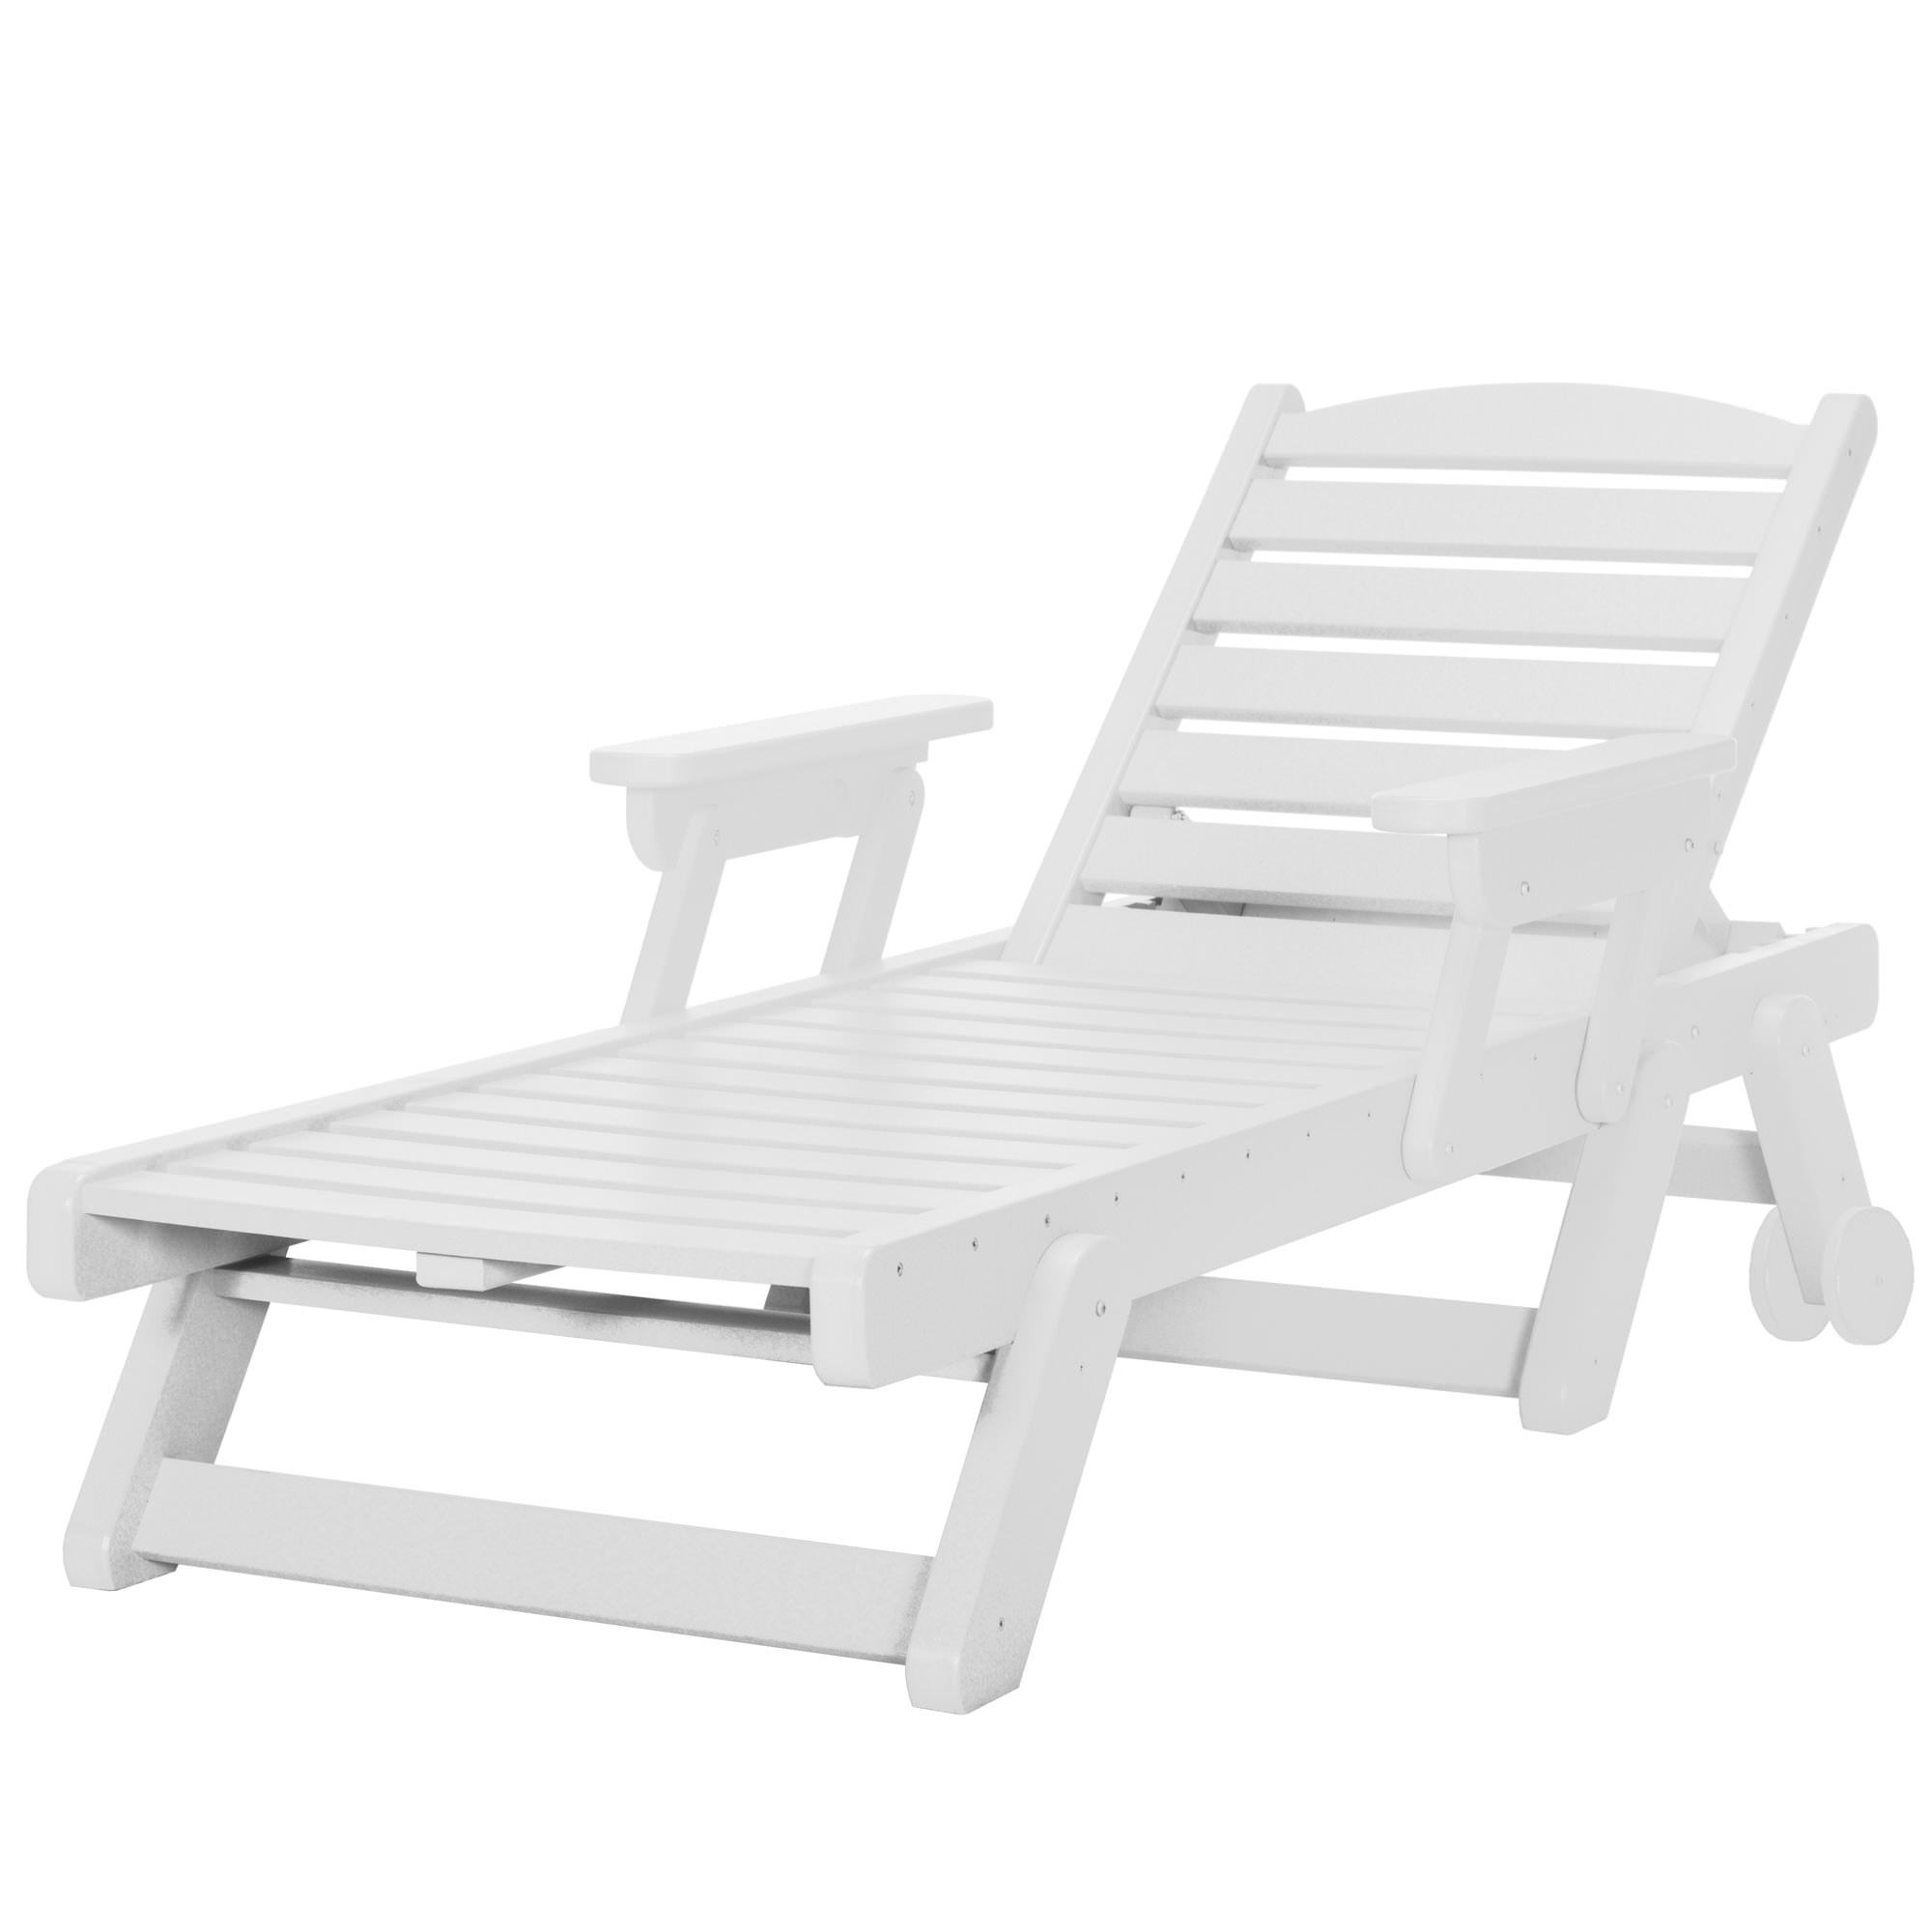 ... Chaise Lounge ...  sc 1 st  Pawleys Island Hammocks : chaise lounge white - Sectionals, Sofas & Couches